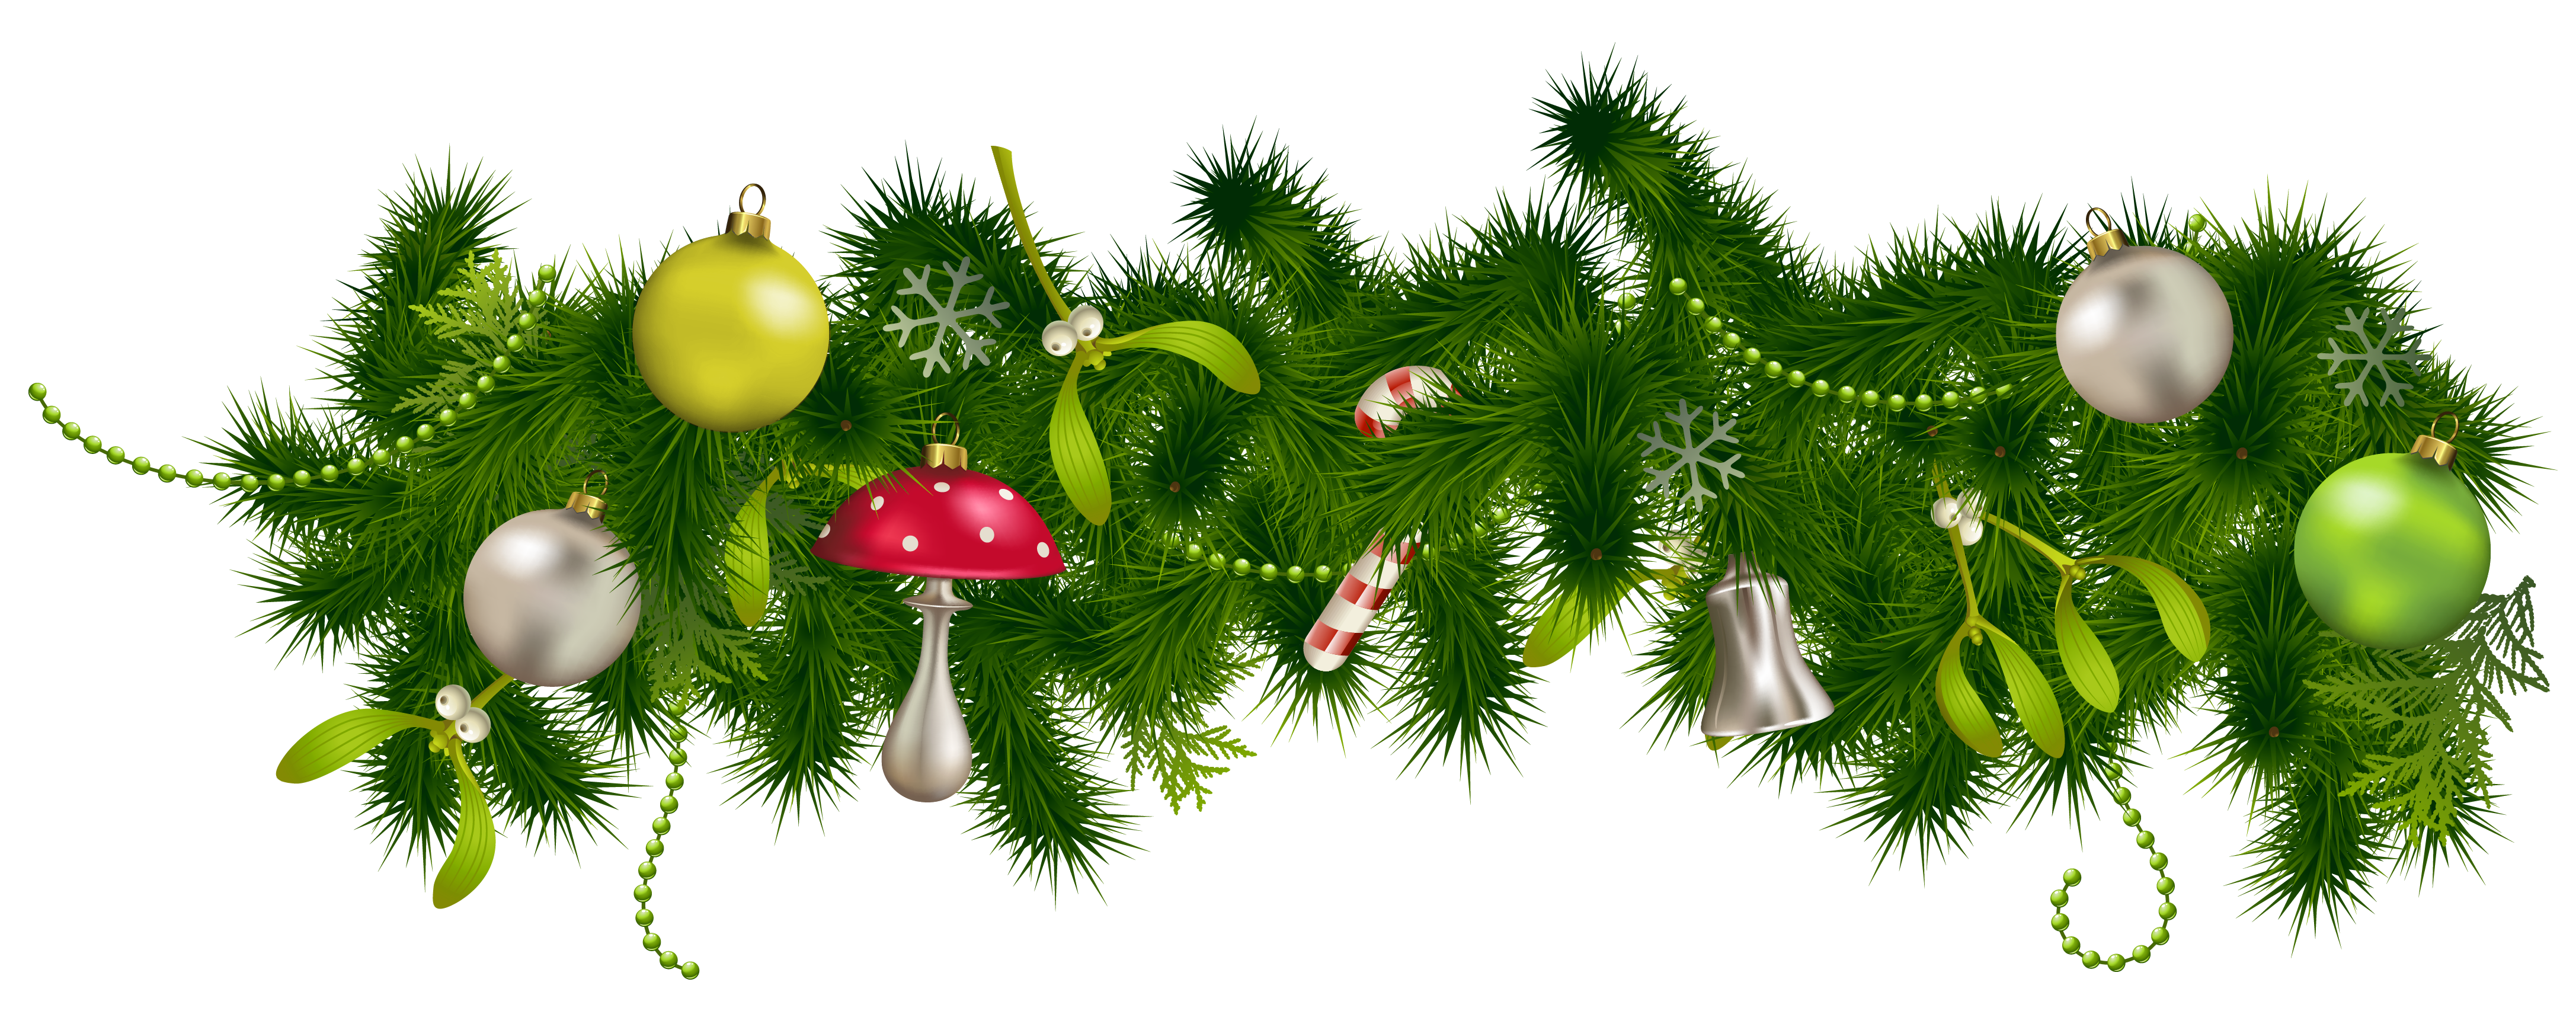 Christmas garland border transparent png. Download free image and